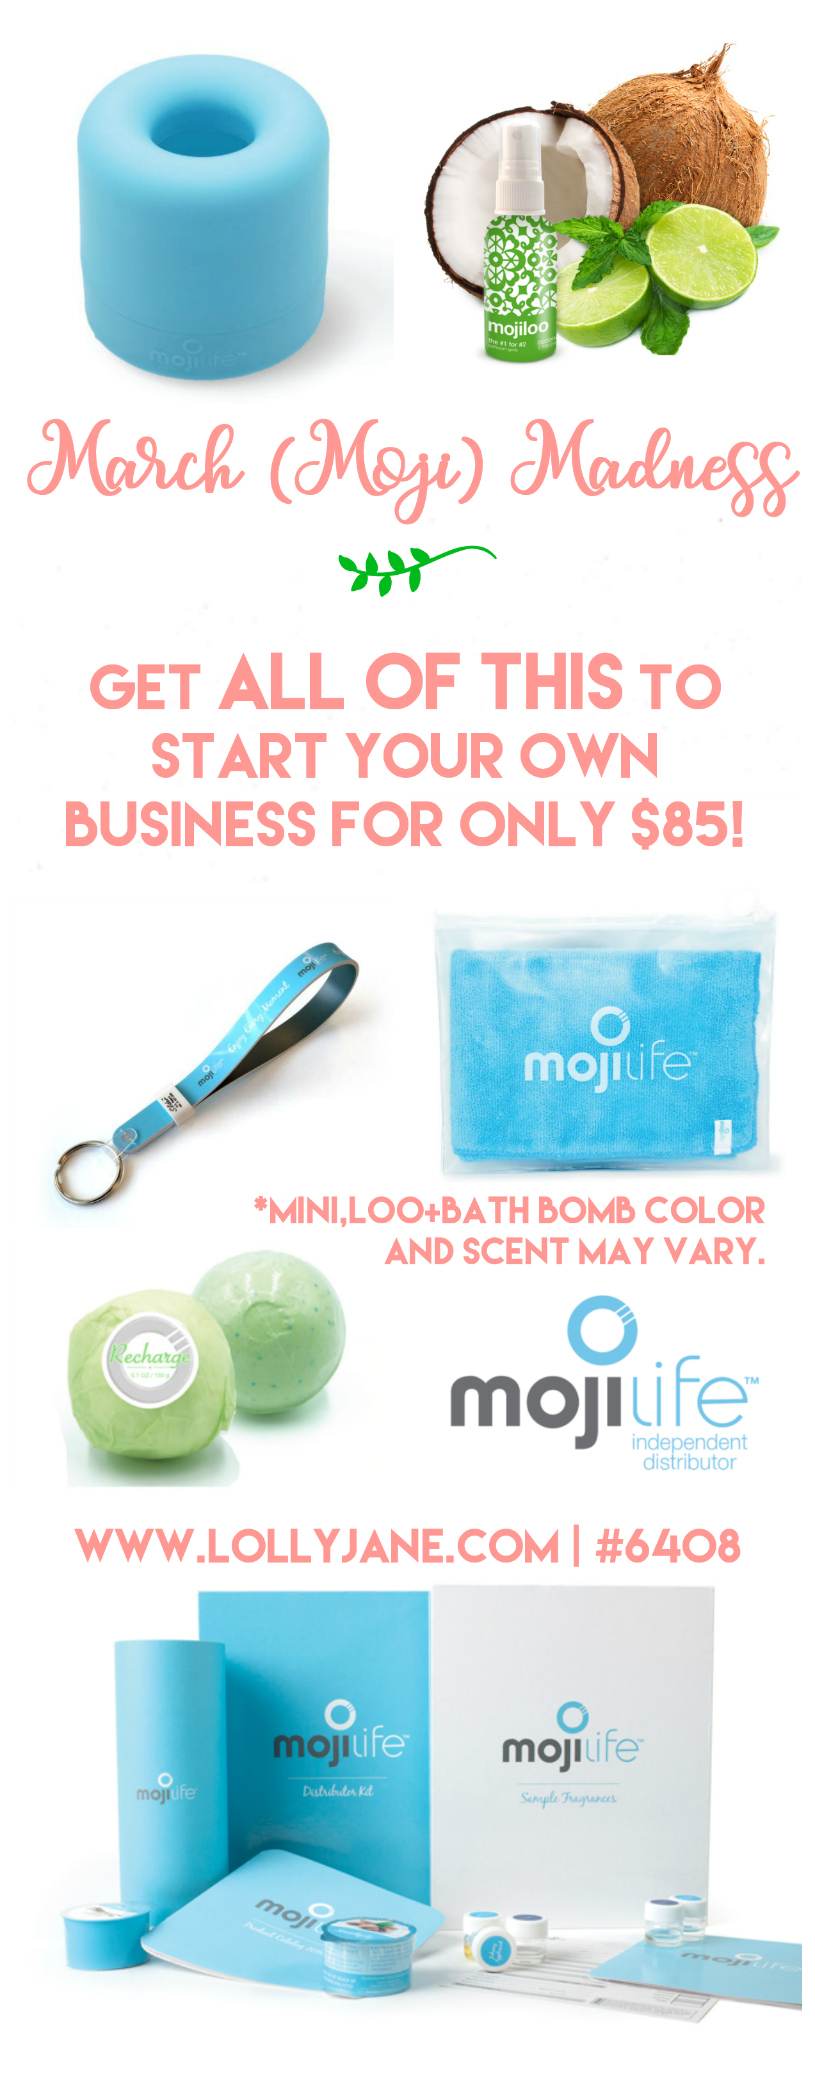 MojLife March Madness SALE!! This is so exciting, for the month of March, purchase ANY kit to get a BONUS PACK FREE!! A $35+ value!! Love a good Moji March Madness home decor sale!!!